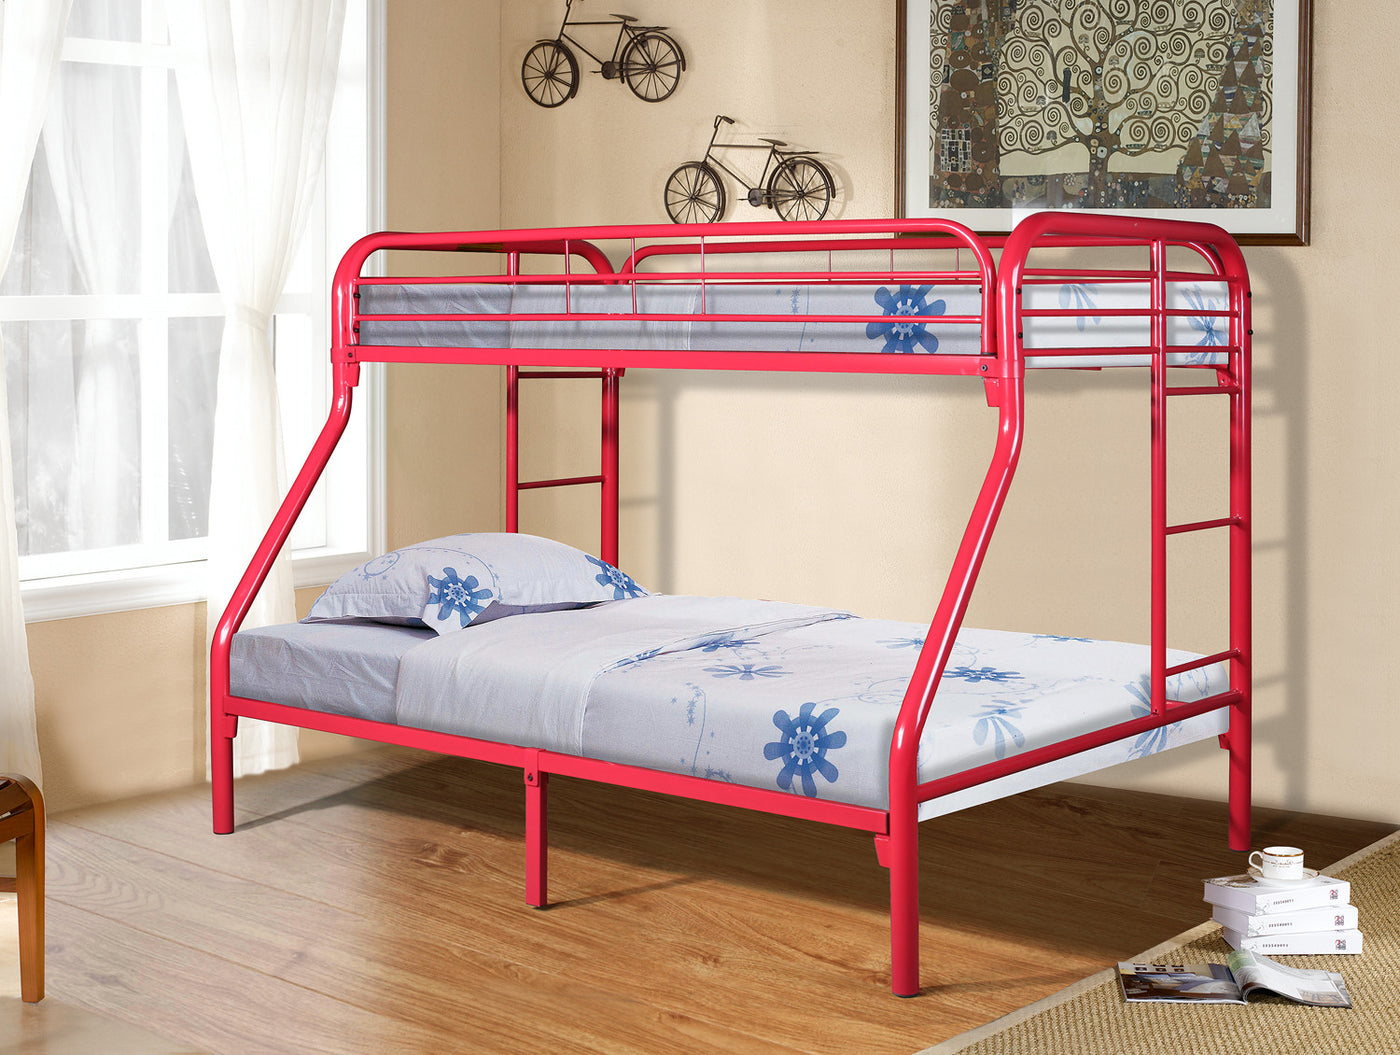 Lowest Price Donco Kids T F Metal Bunk Bed Red 4502 3rd Hipbeds